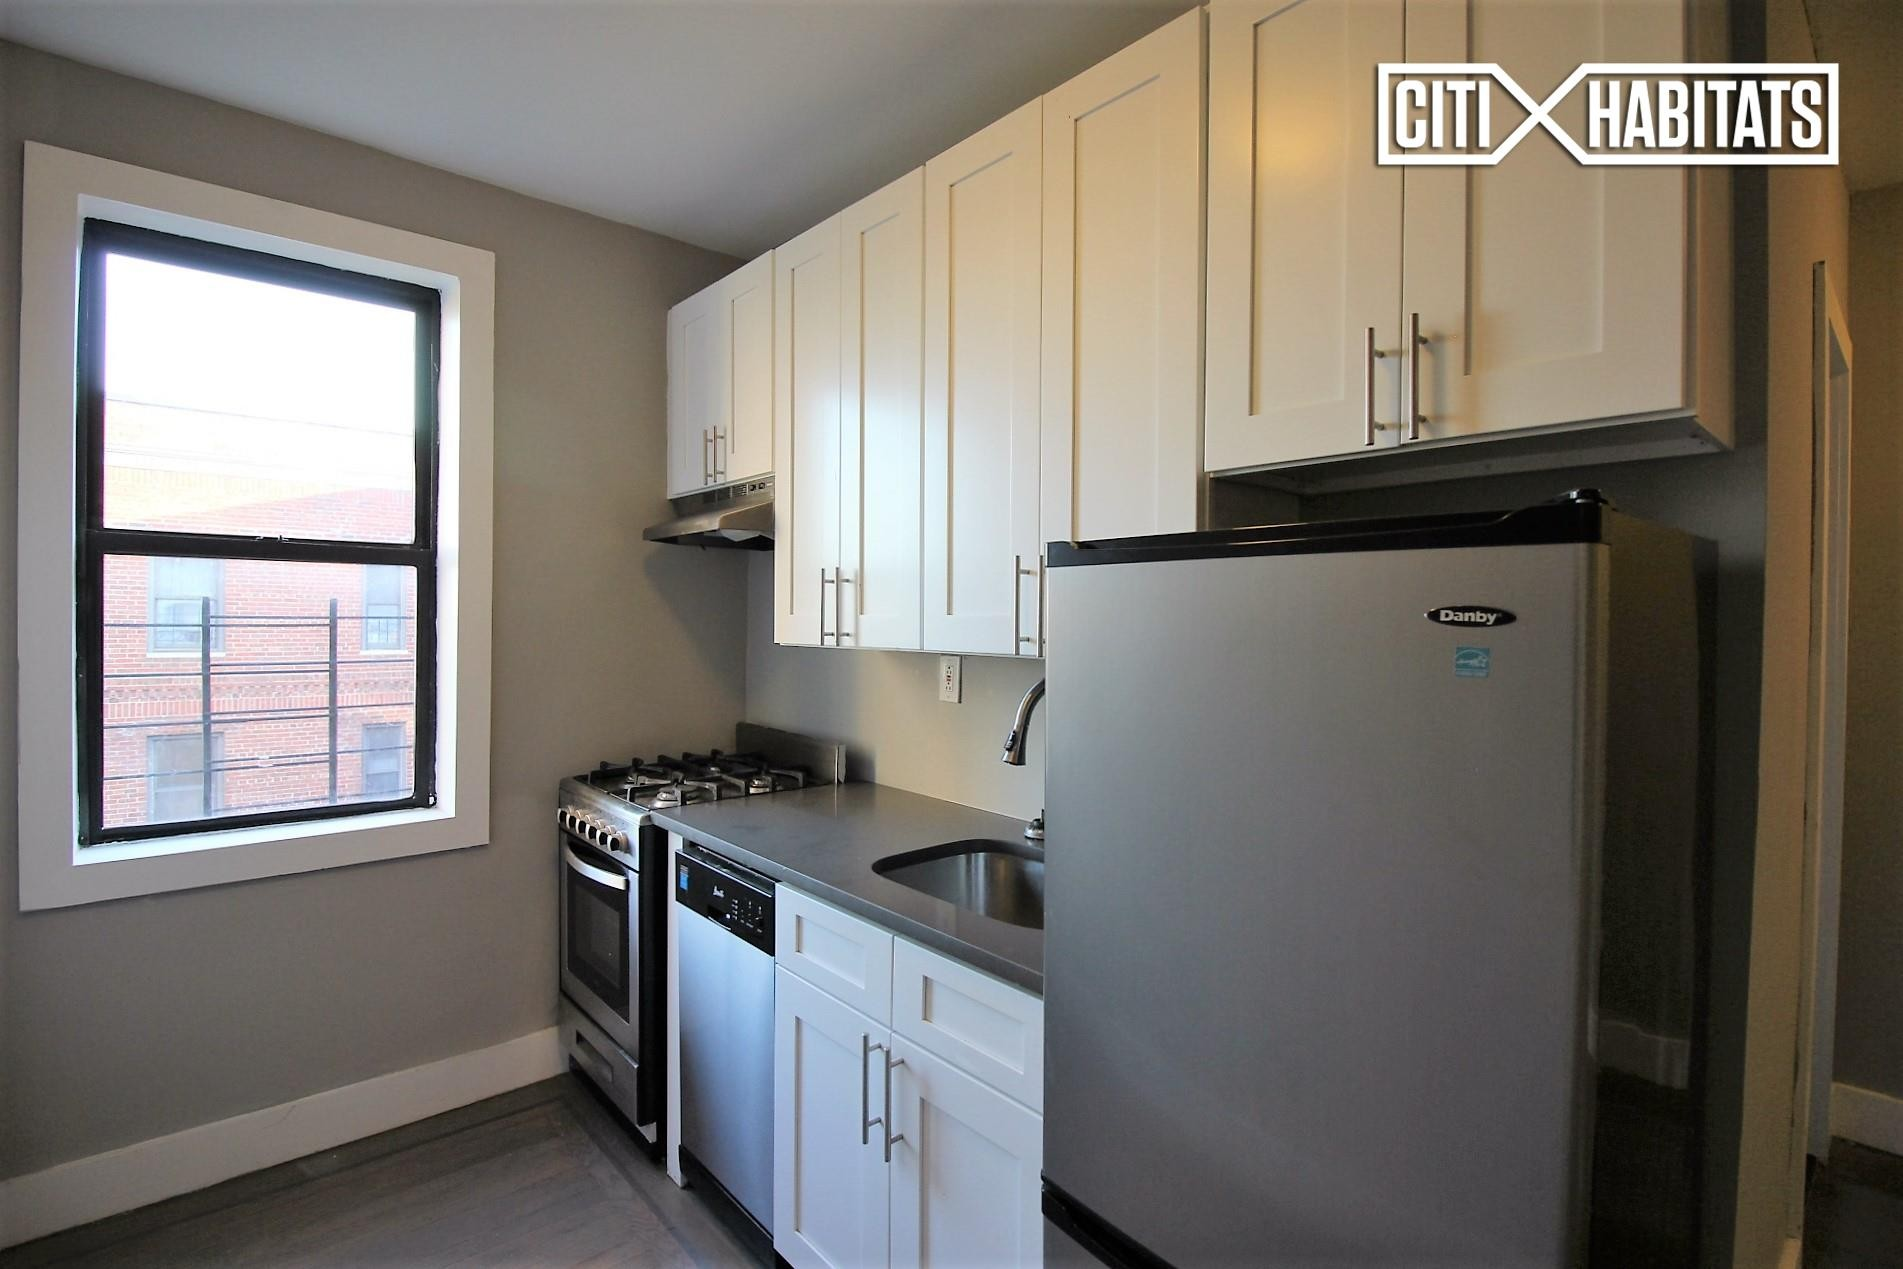 Waldo Ave 8h Bronx Ny 10463 2 Bedroom Apartment For Rent For 3 000 Month Zumper